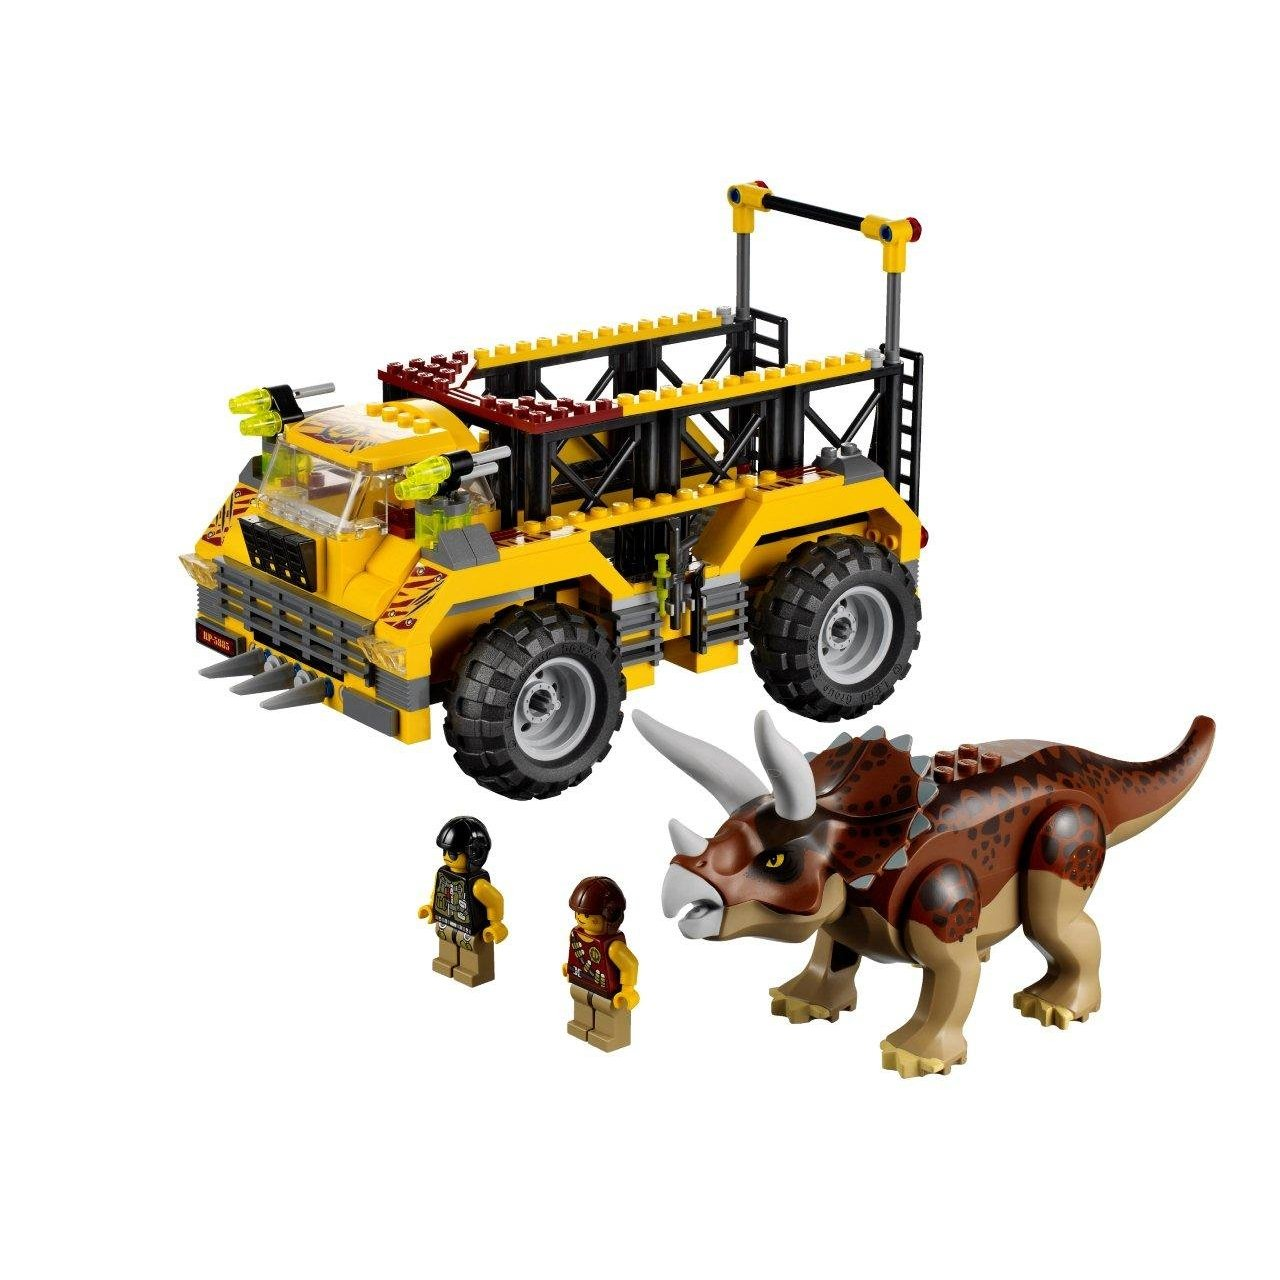 Playfactory dino le pi ge du tric ratops lego - Jeux lego dino ...